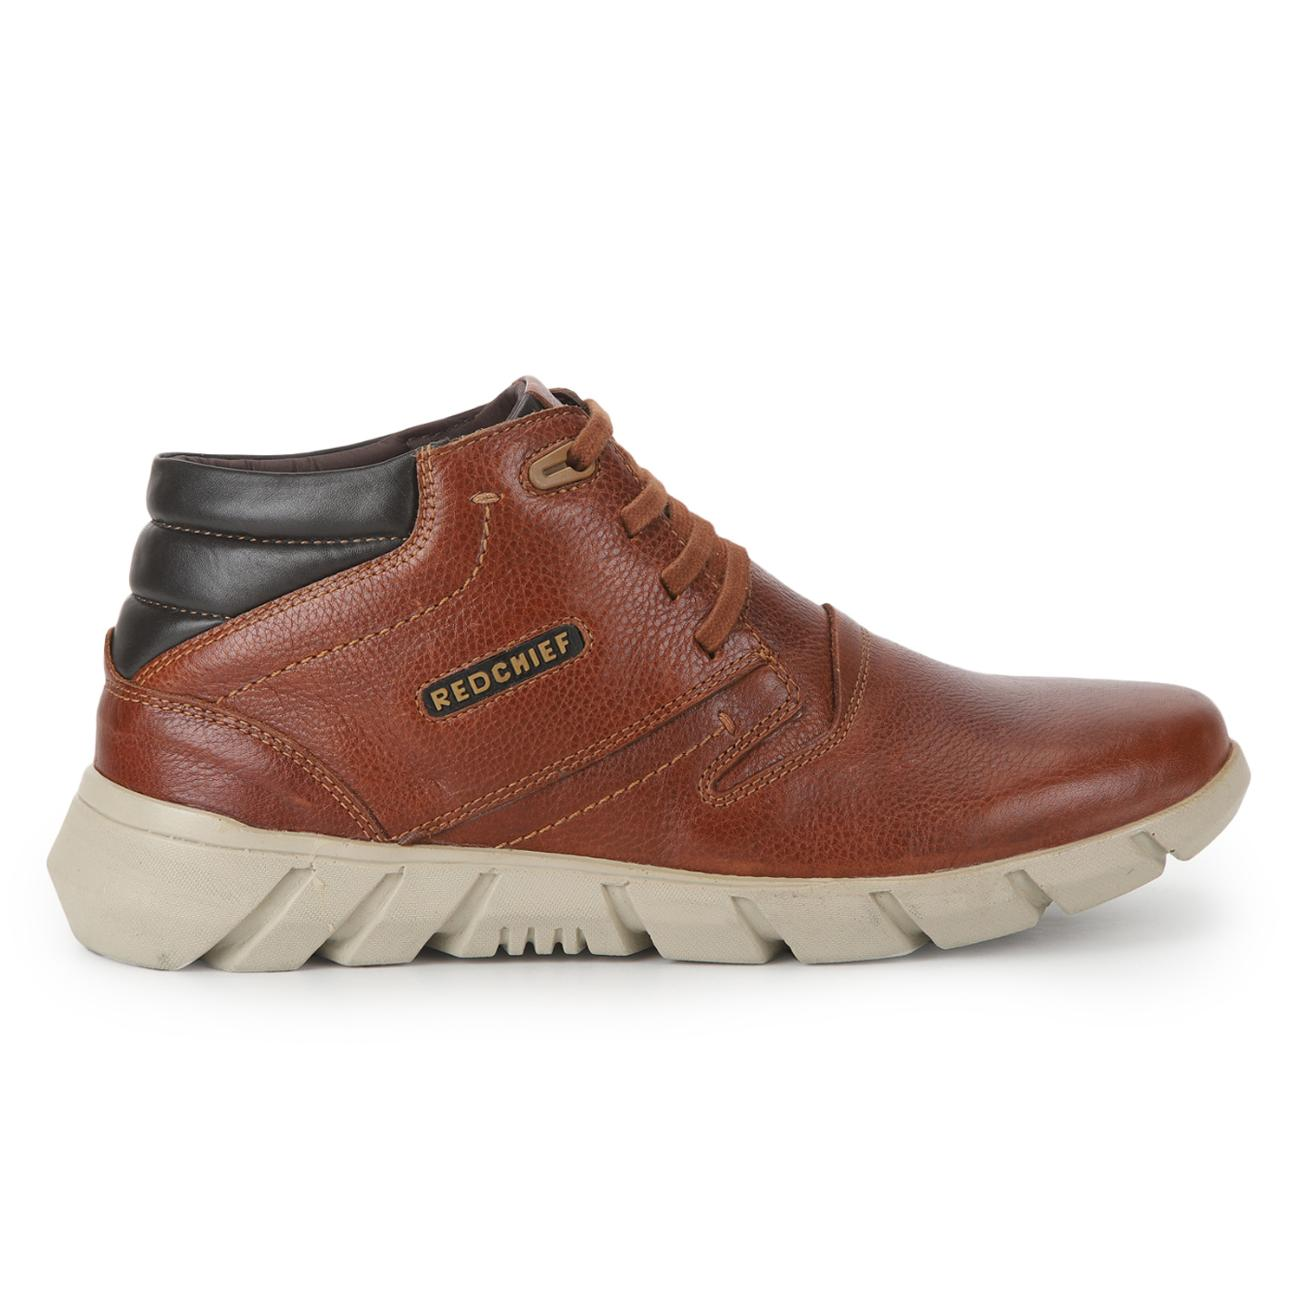 tan casual derby shoes side view_2